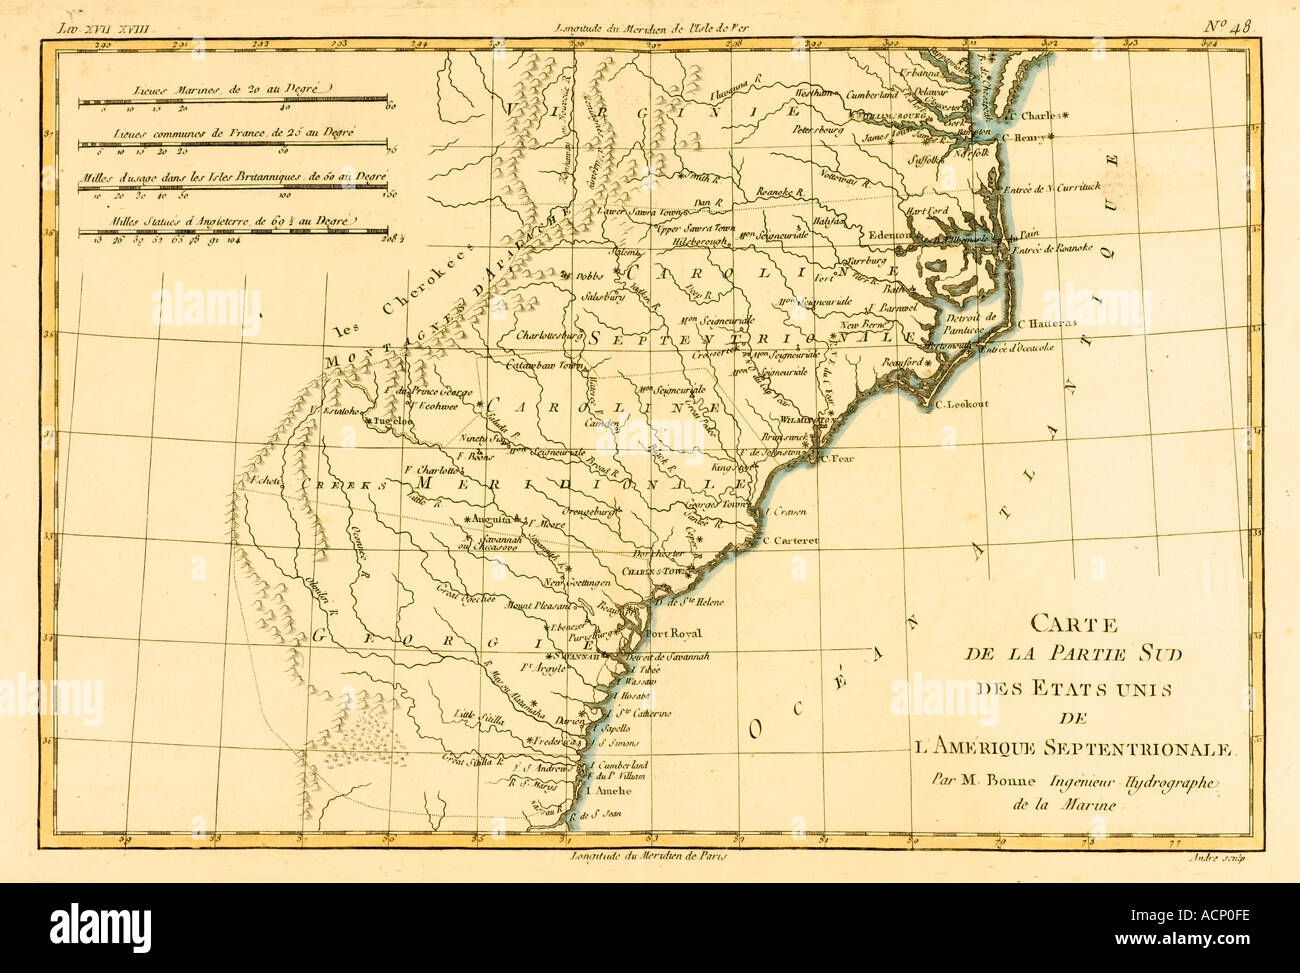 Map of the southern united states of North America circa 1760 - Stock Image